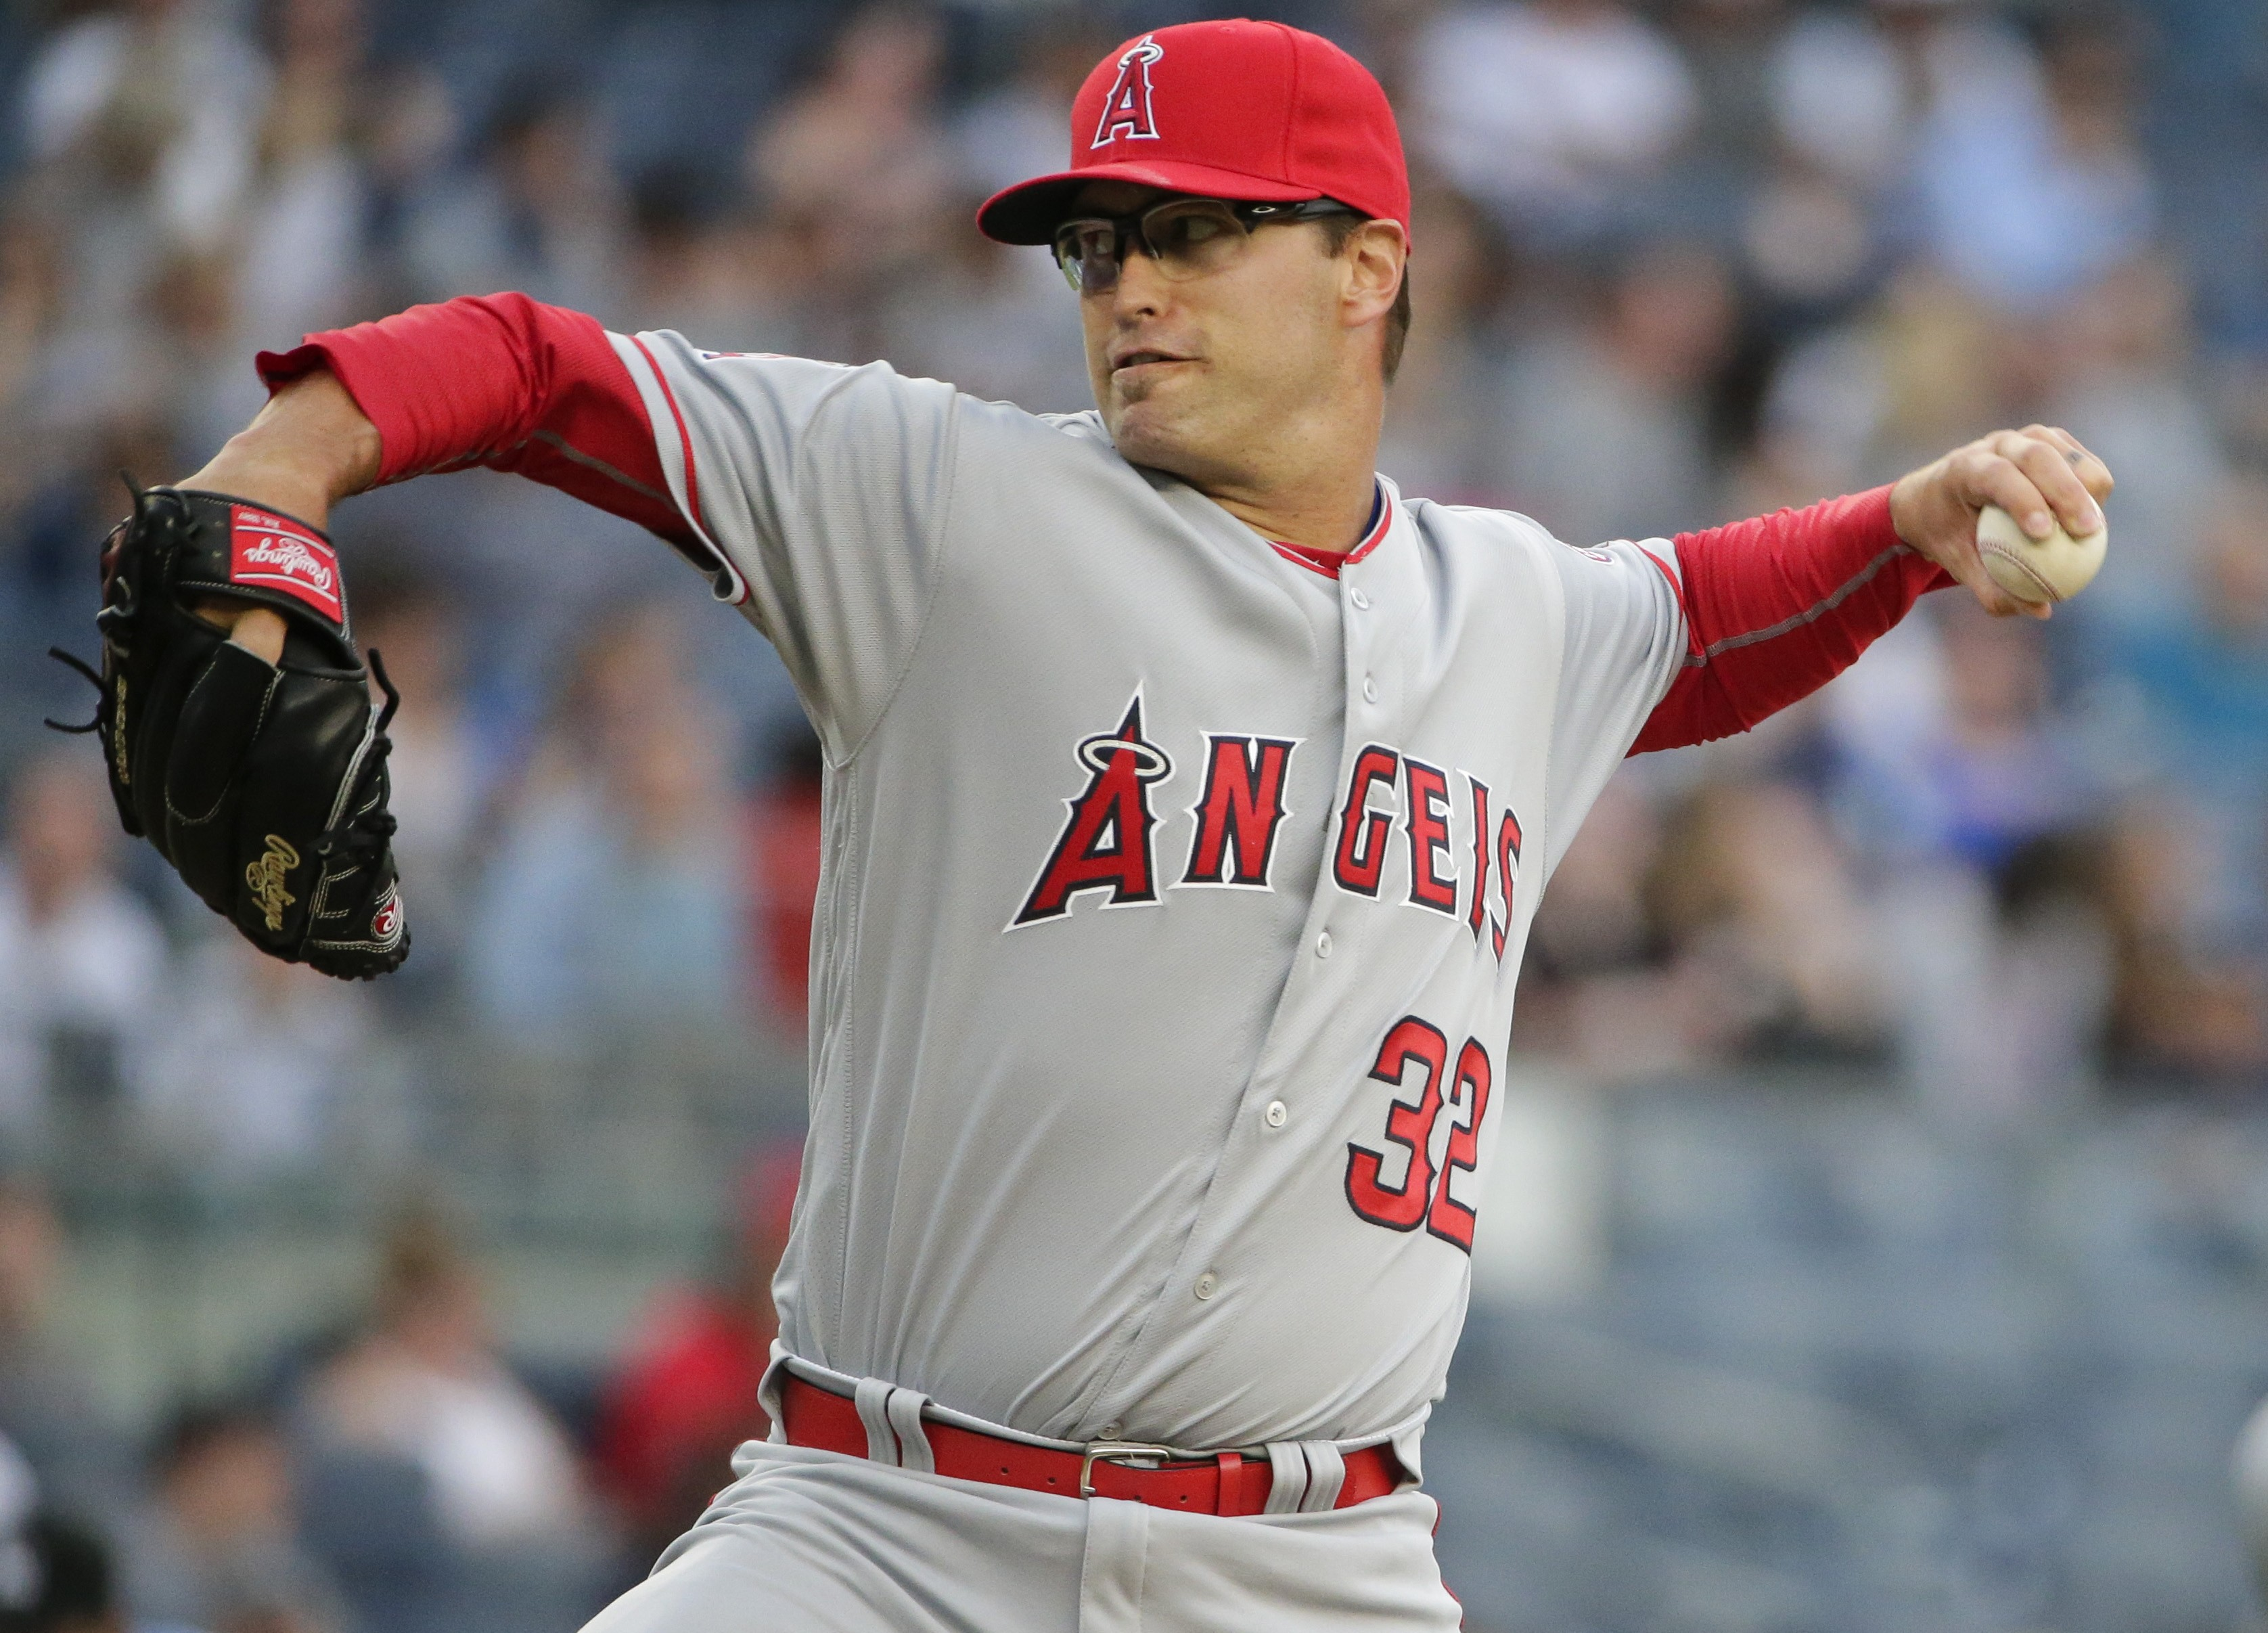 Los Angeles Angels' David Huff delivers a pitch during the first inning of a baseball game against the New York Yankees on Tuesday, June 7, 2016, in New York. (AP Photo/Frank Franklin II)